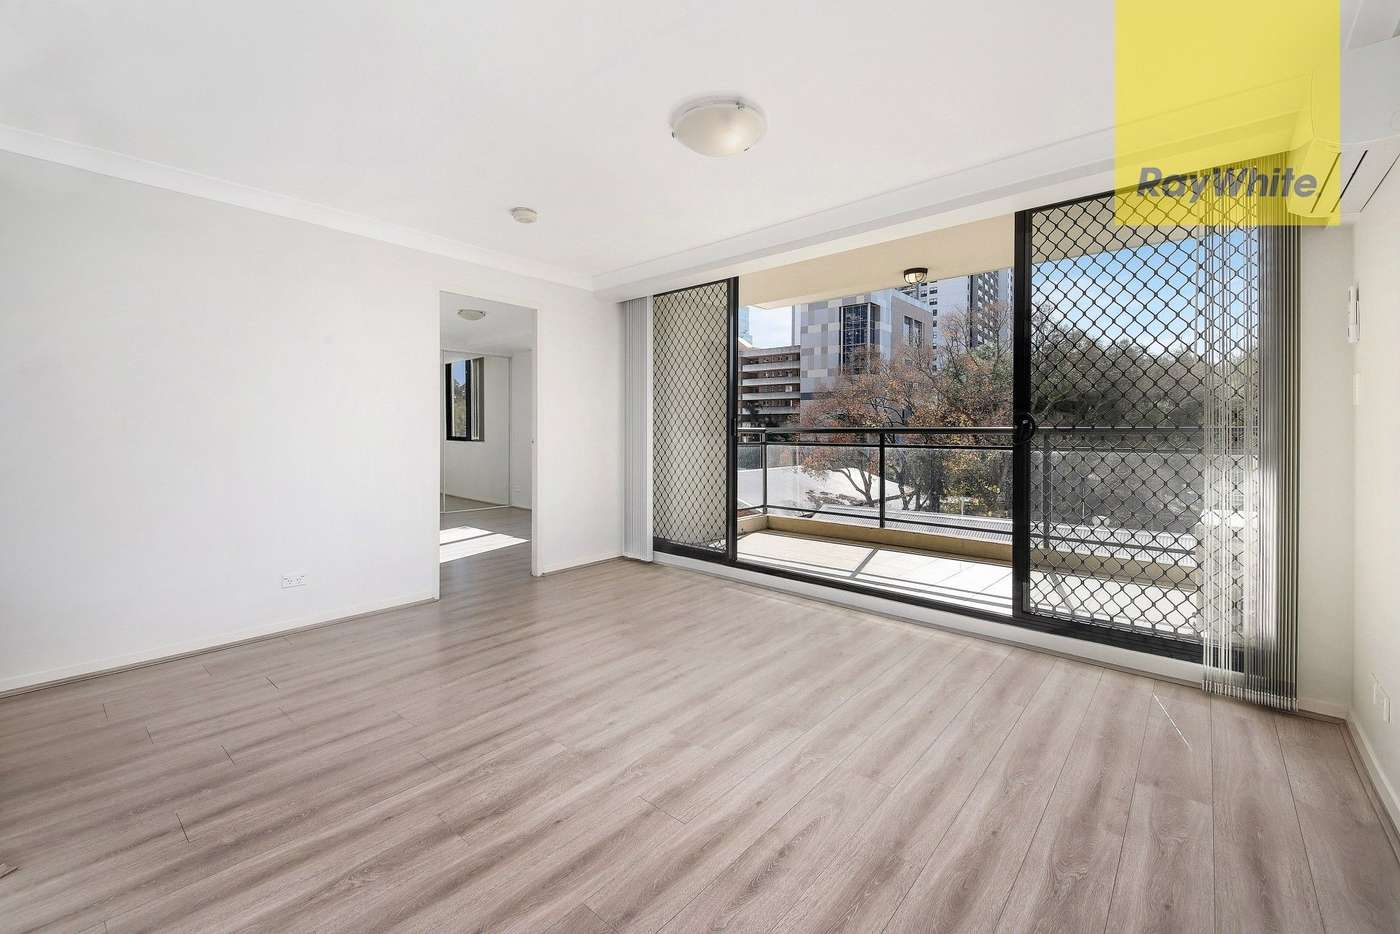 Main view of Homely apartment listing, 5/32 Hassall Street, Parramatta NSW 2150